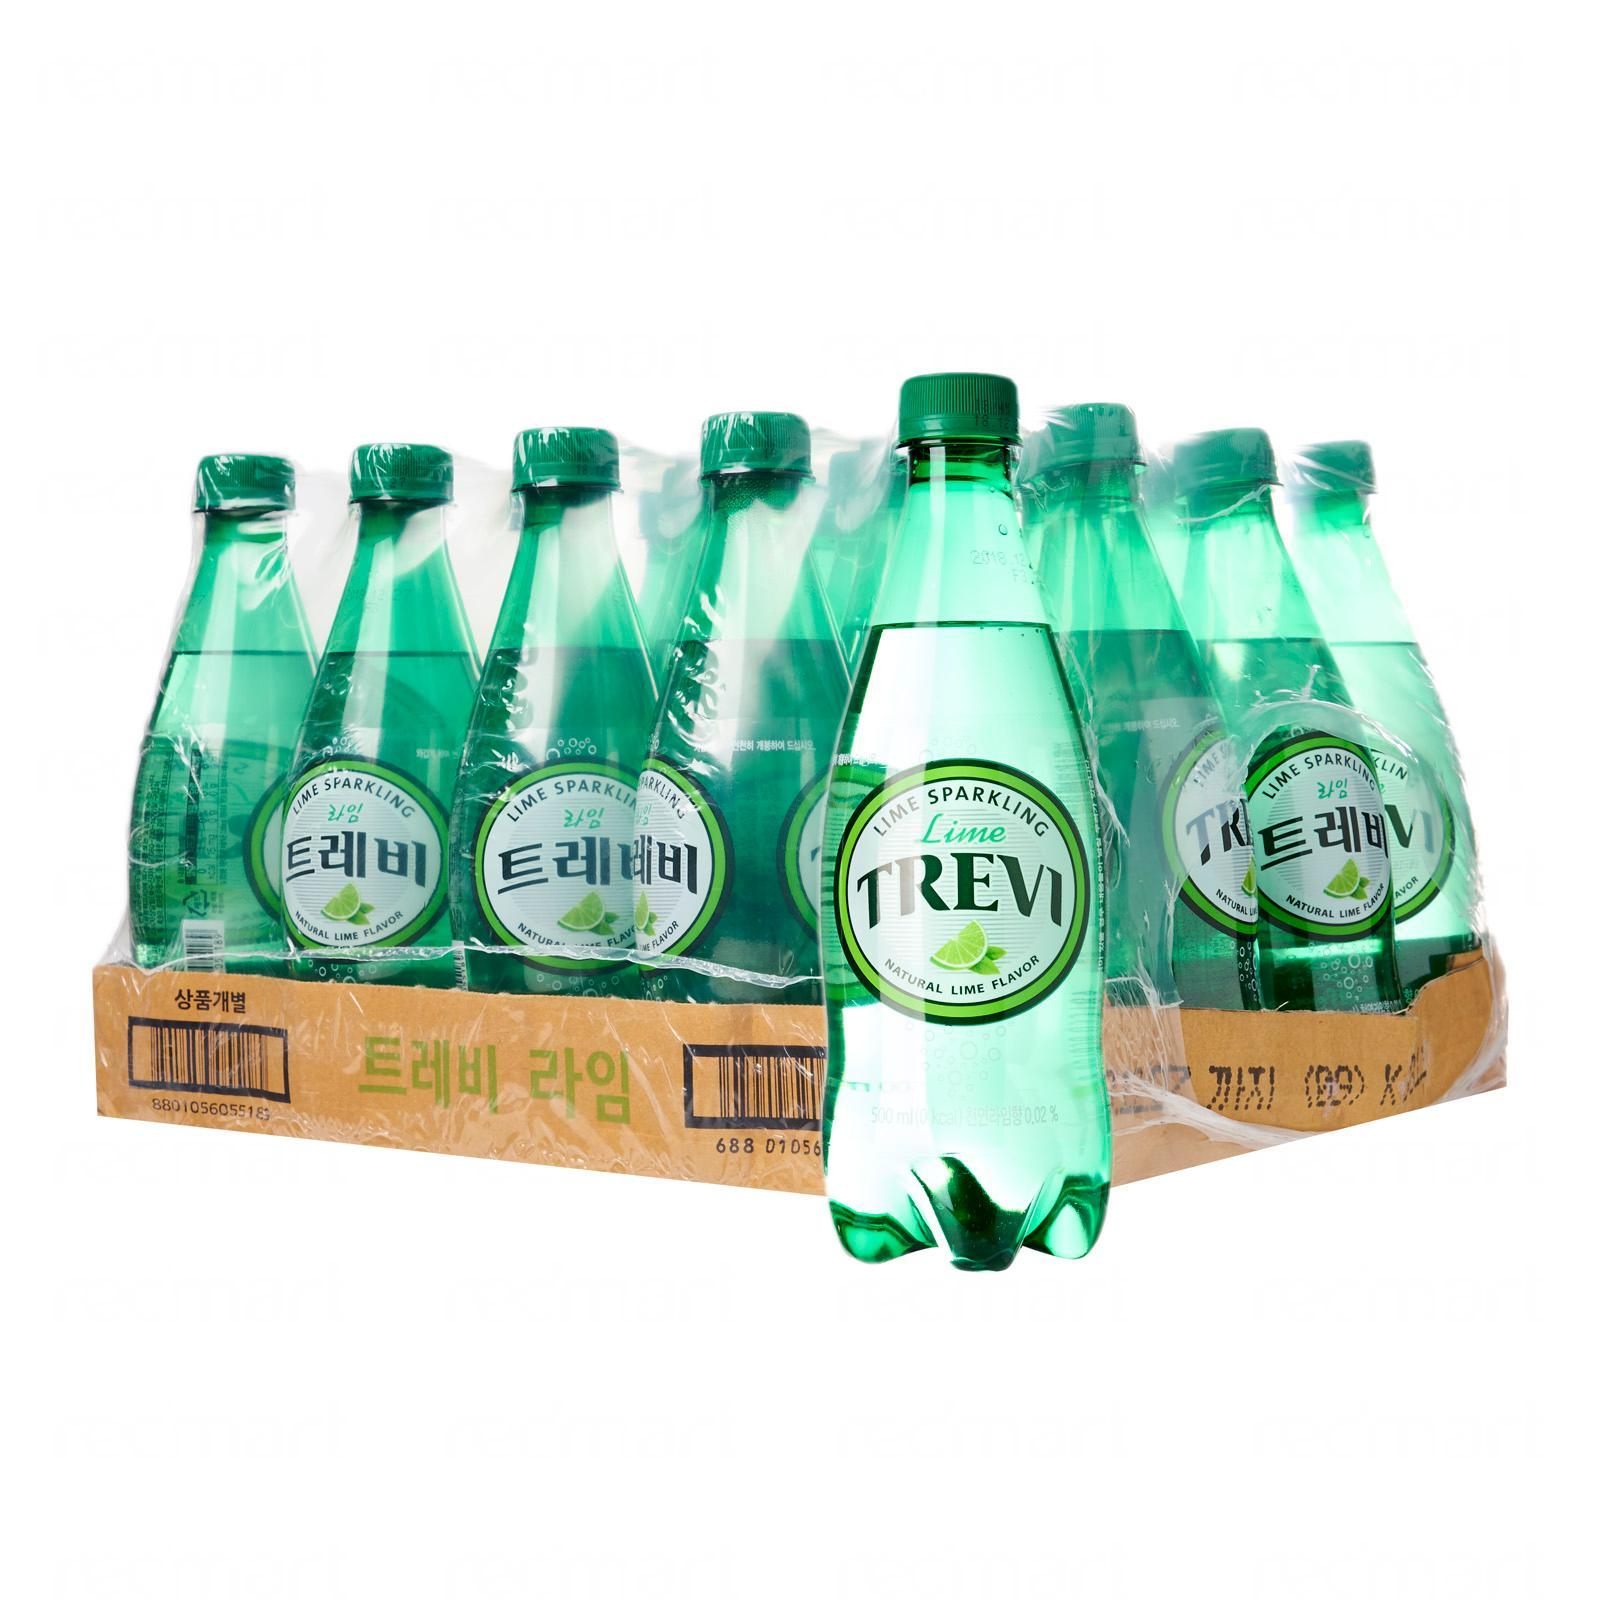 Lotte Chilsung Trevi Sparkling Water Lime - Case